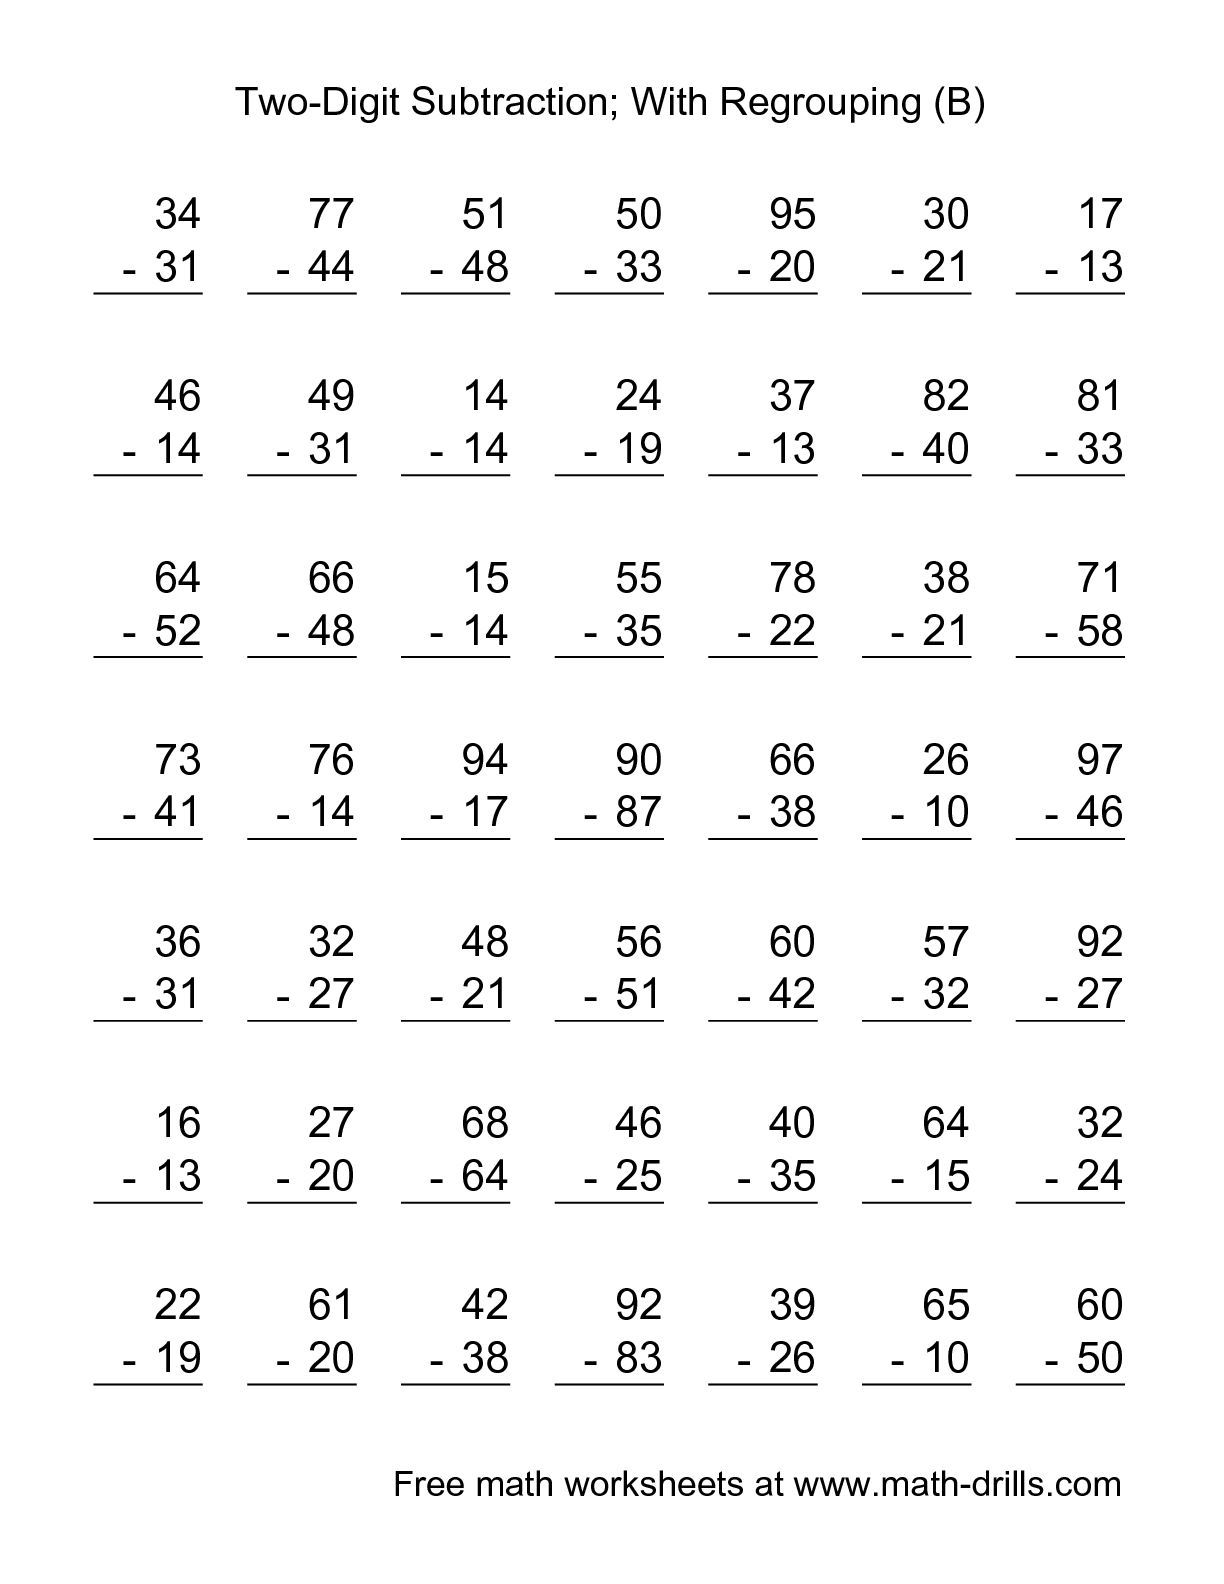 The Two Digit Subtraction With Some Regrouping 49 Questions B Math Worksheet From The